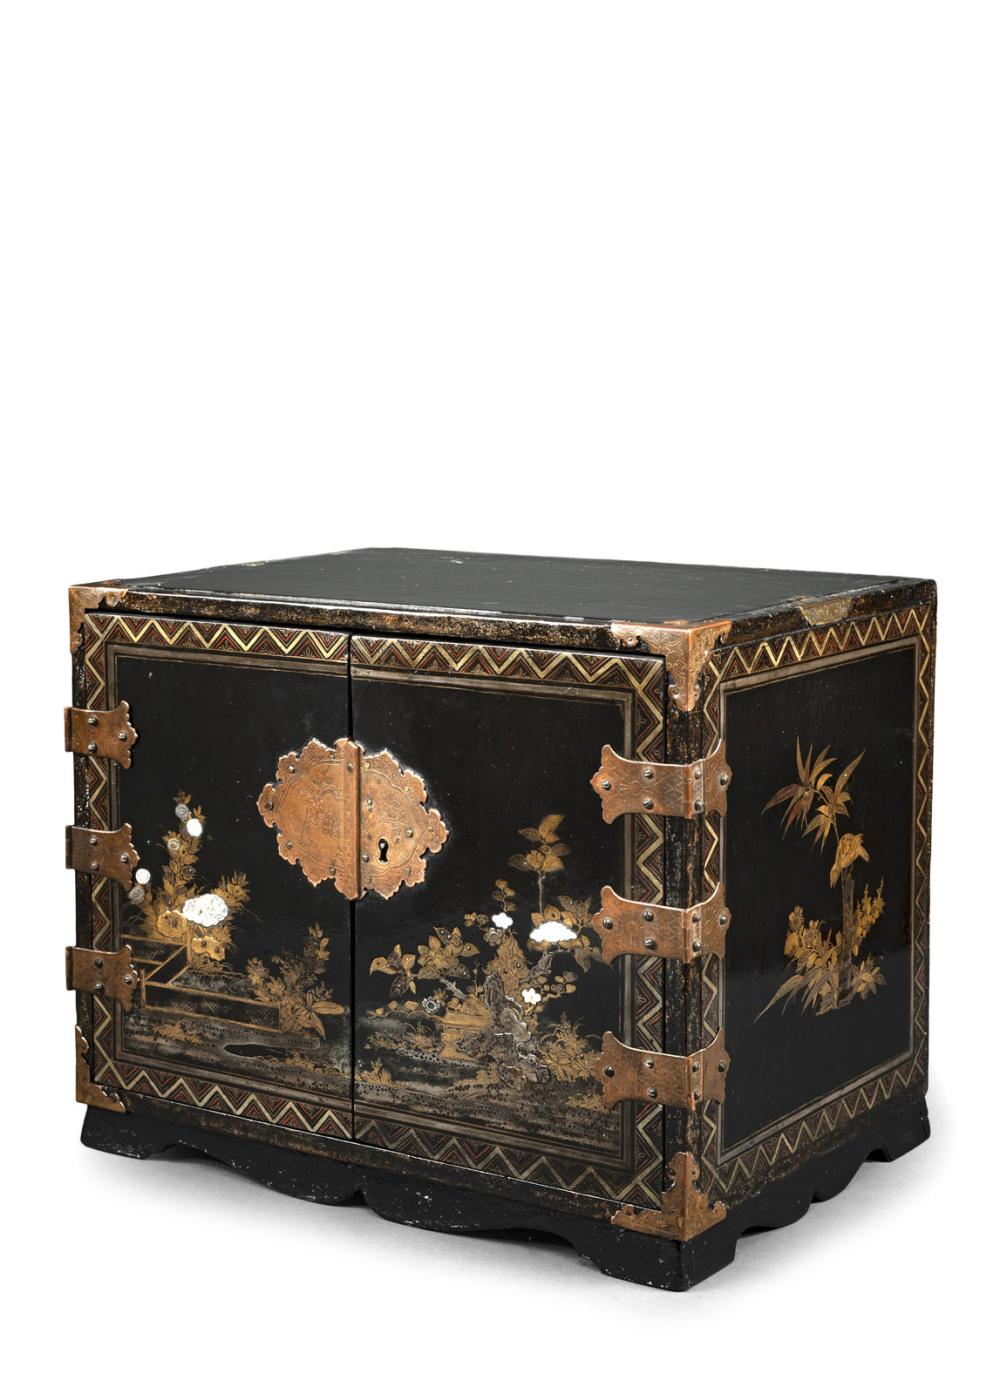 A BLACK-LACQUERED WOOD CABINET